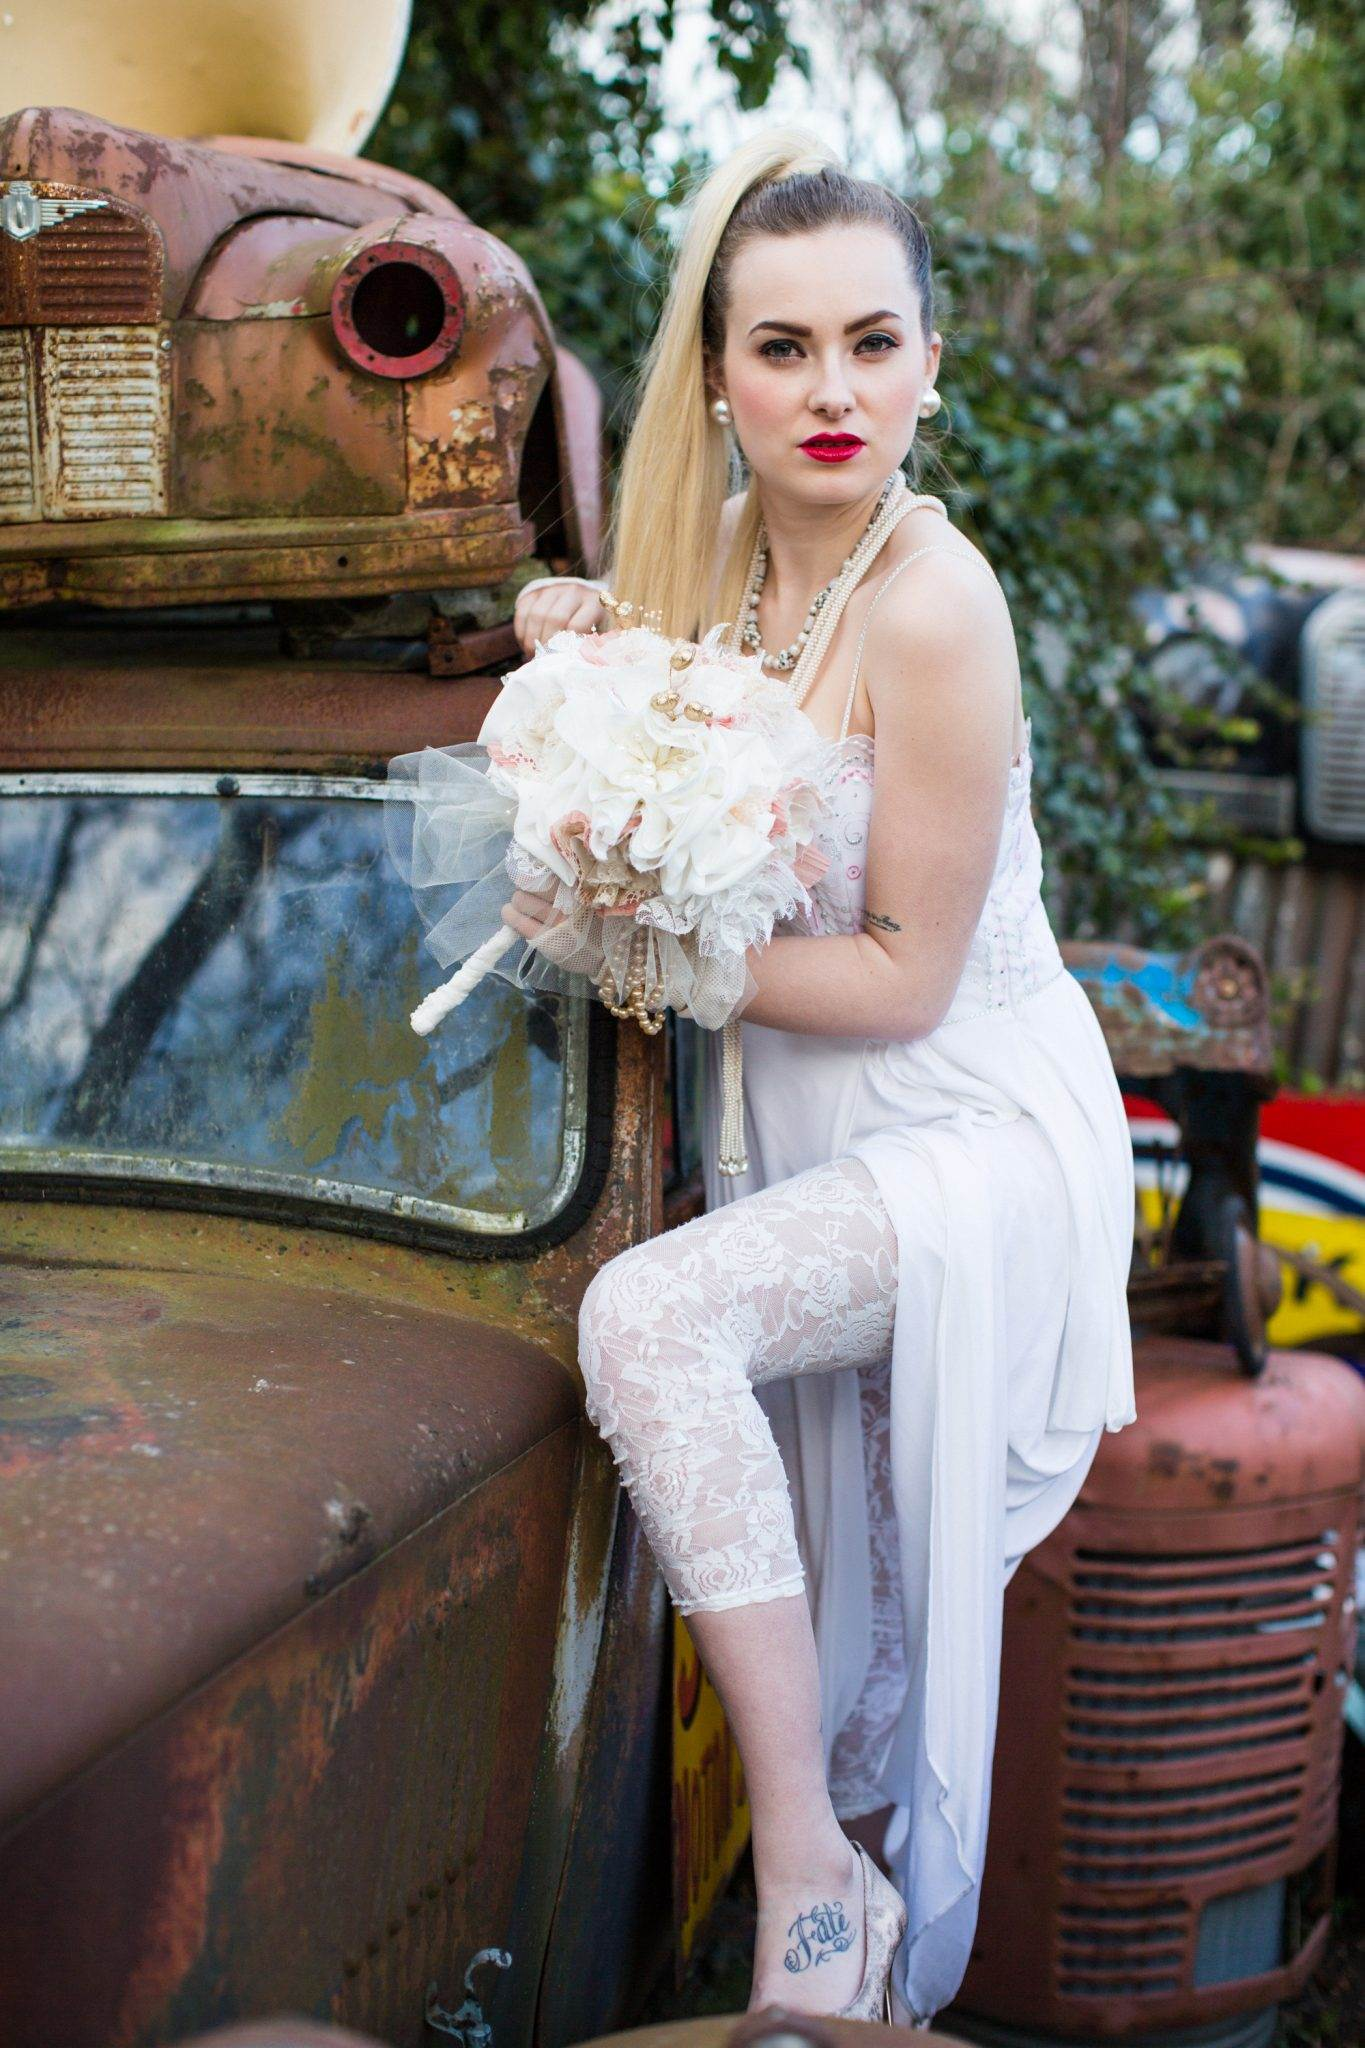 4 vintage 1980s wedding looks for an alternative bride